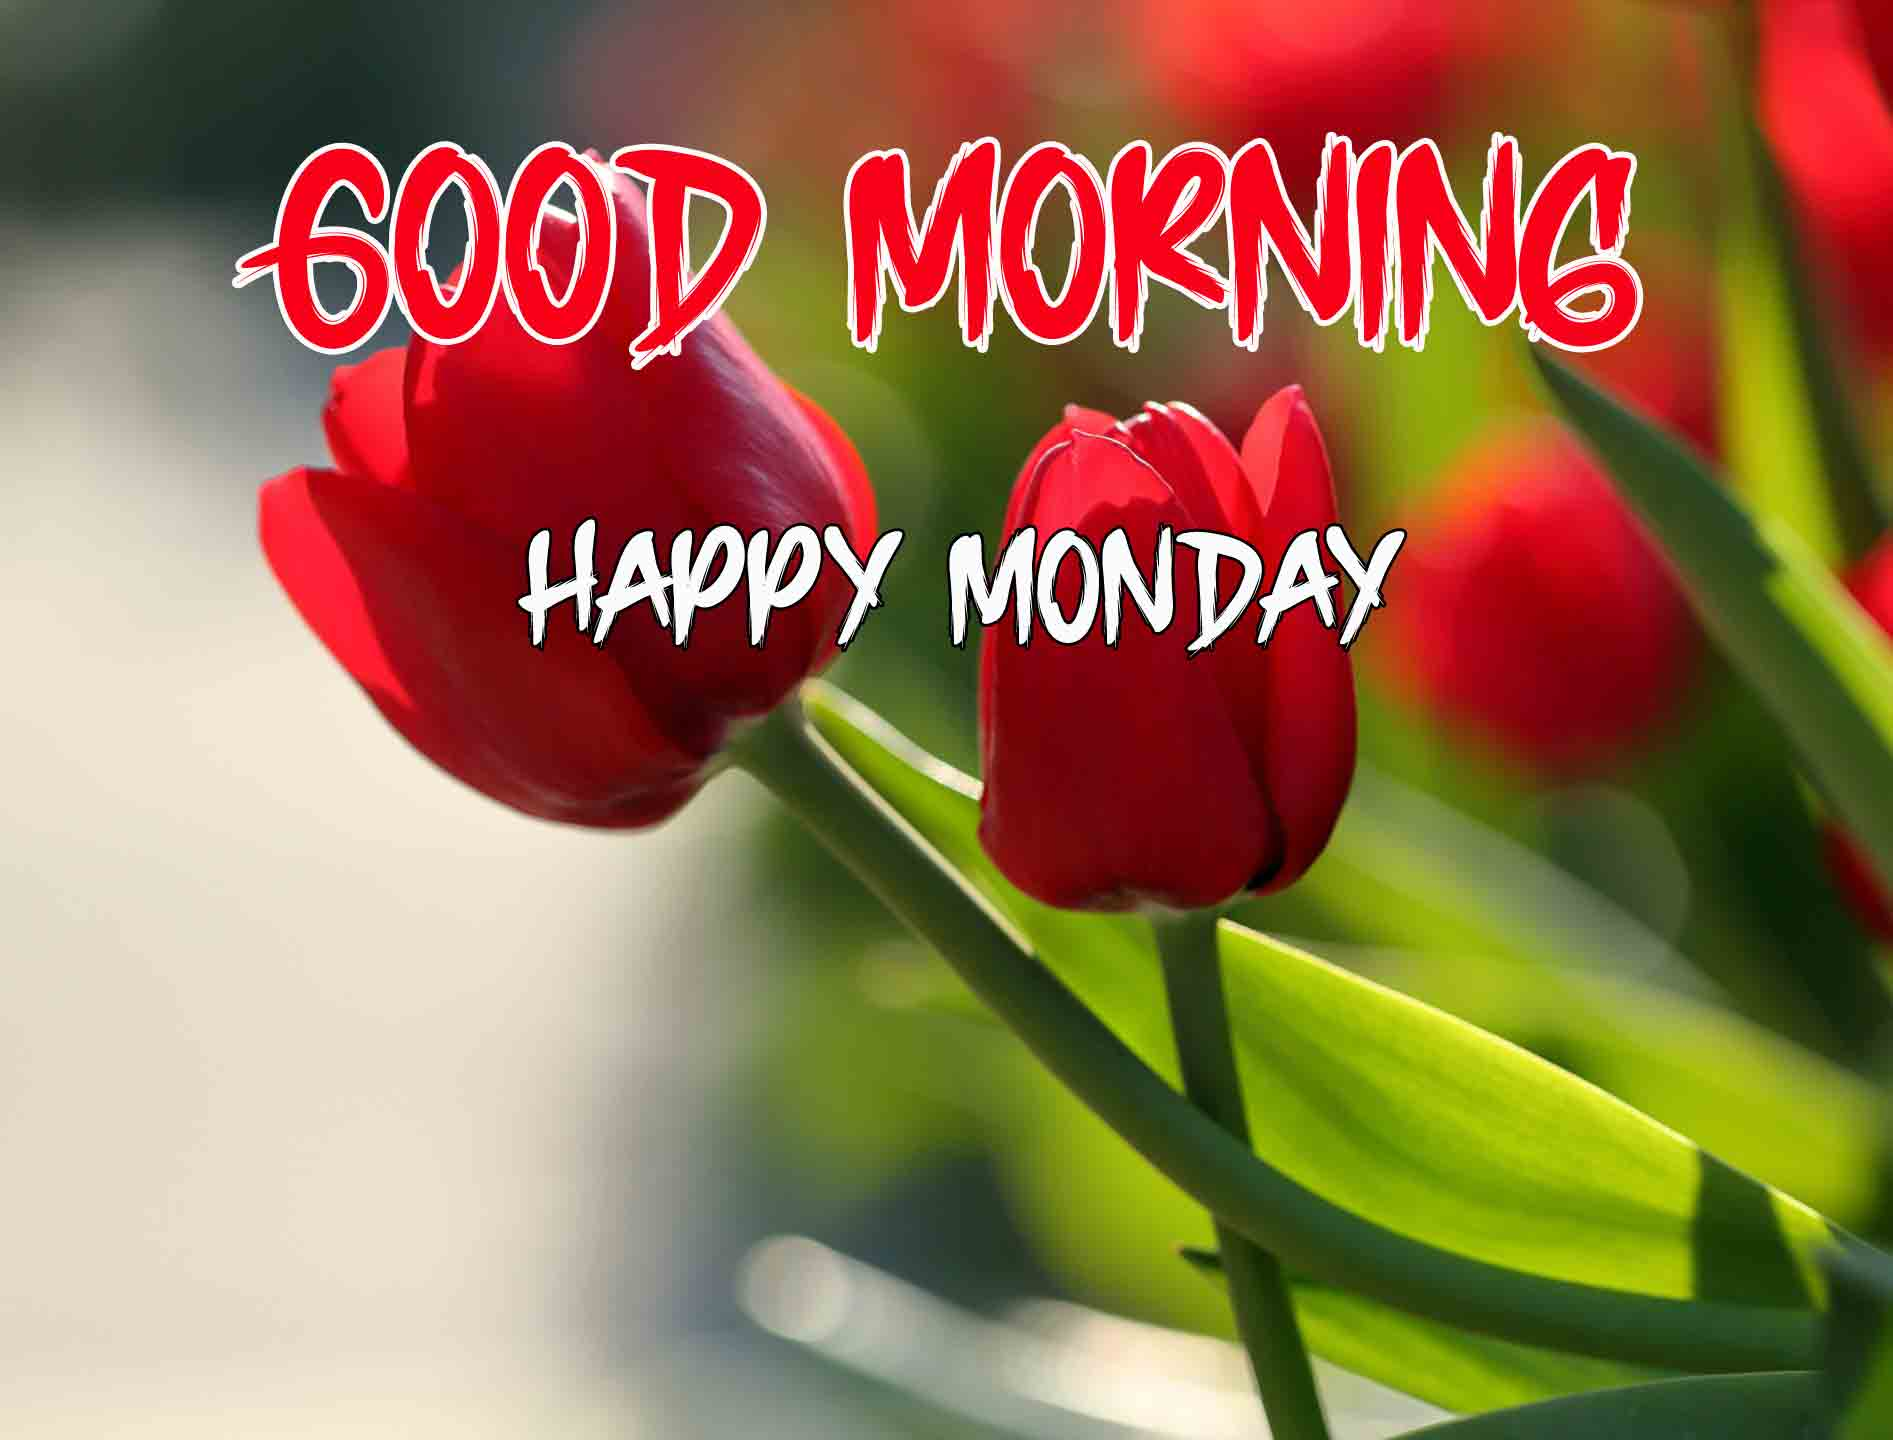 Best Monday Good Morning Images pictures photo free download